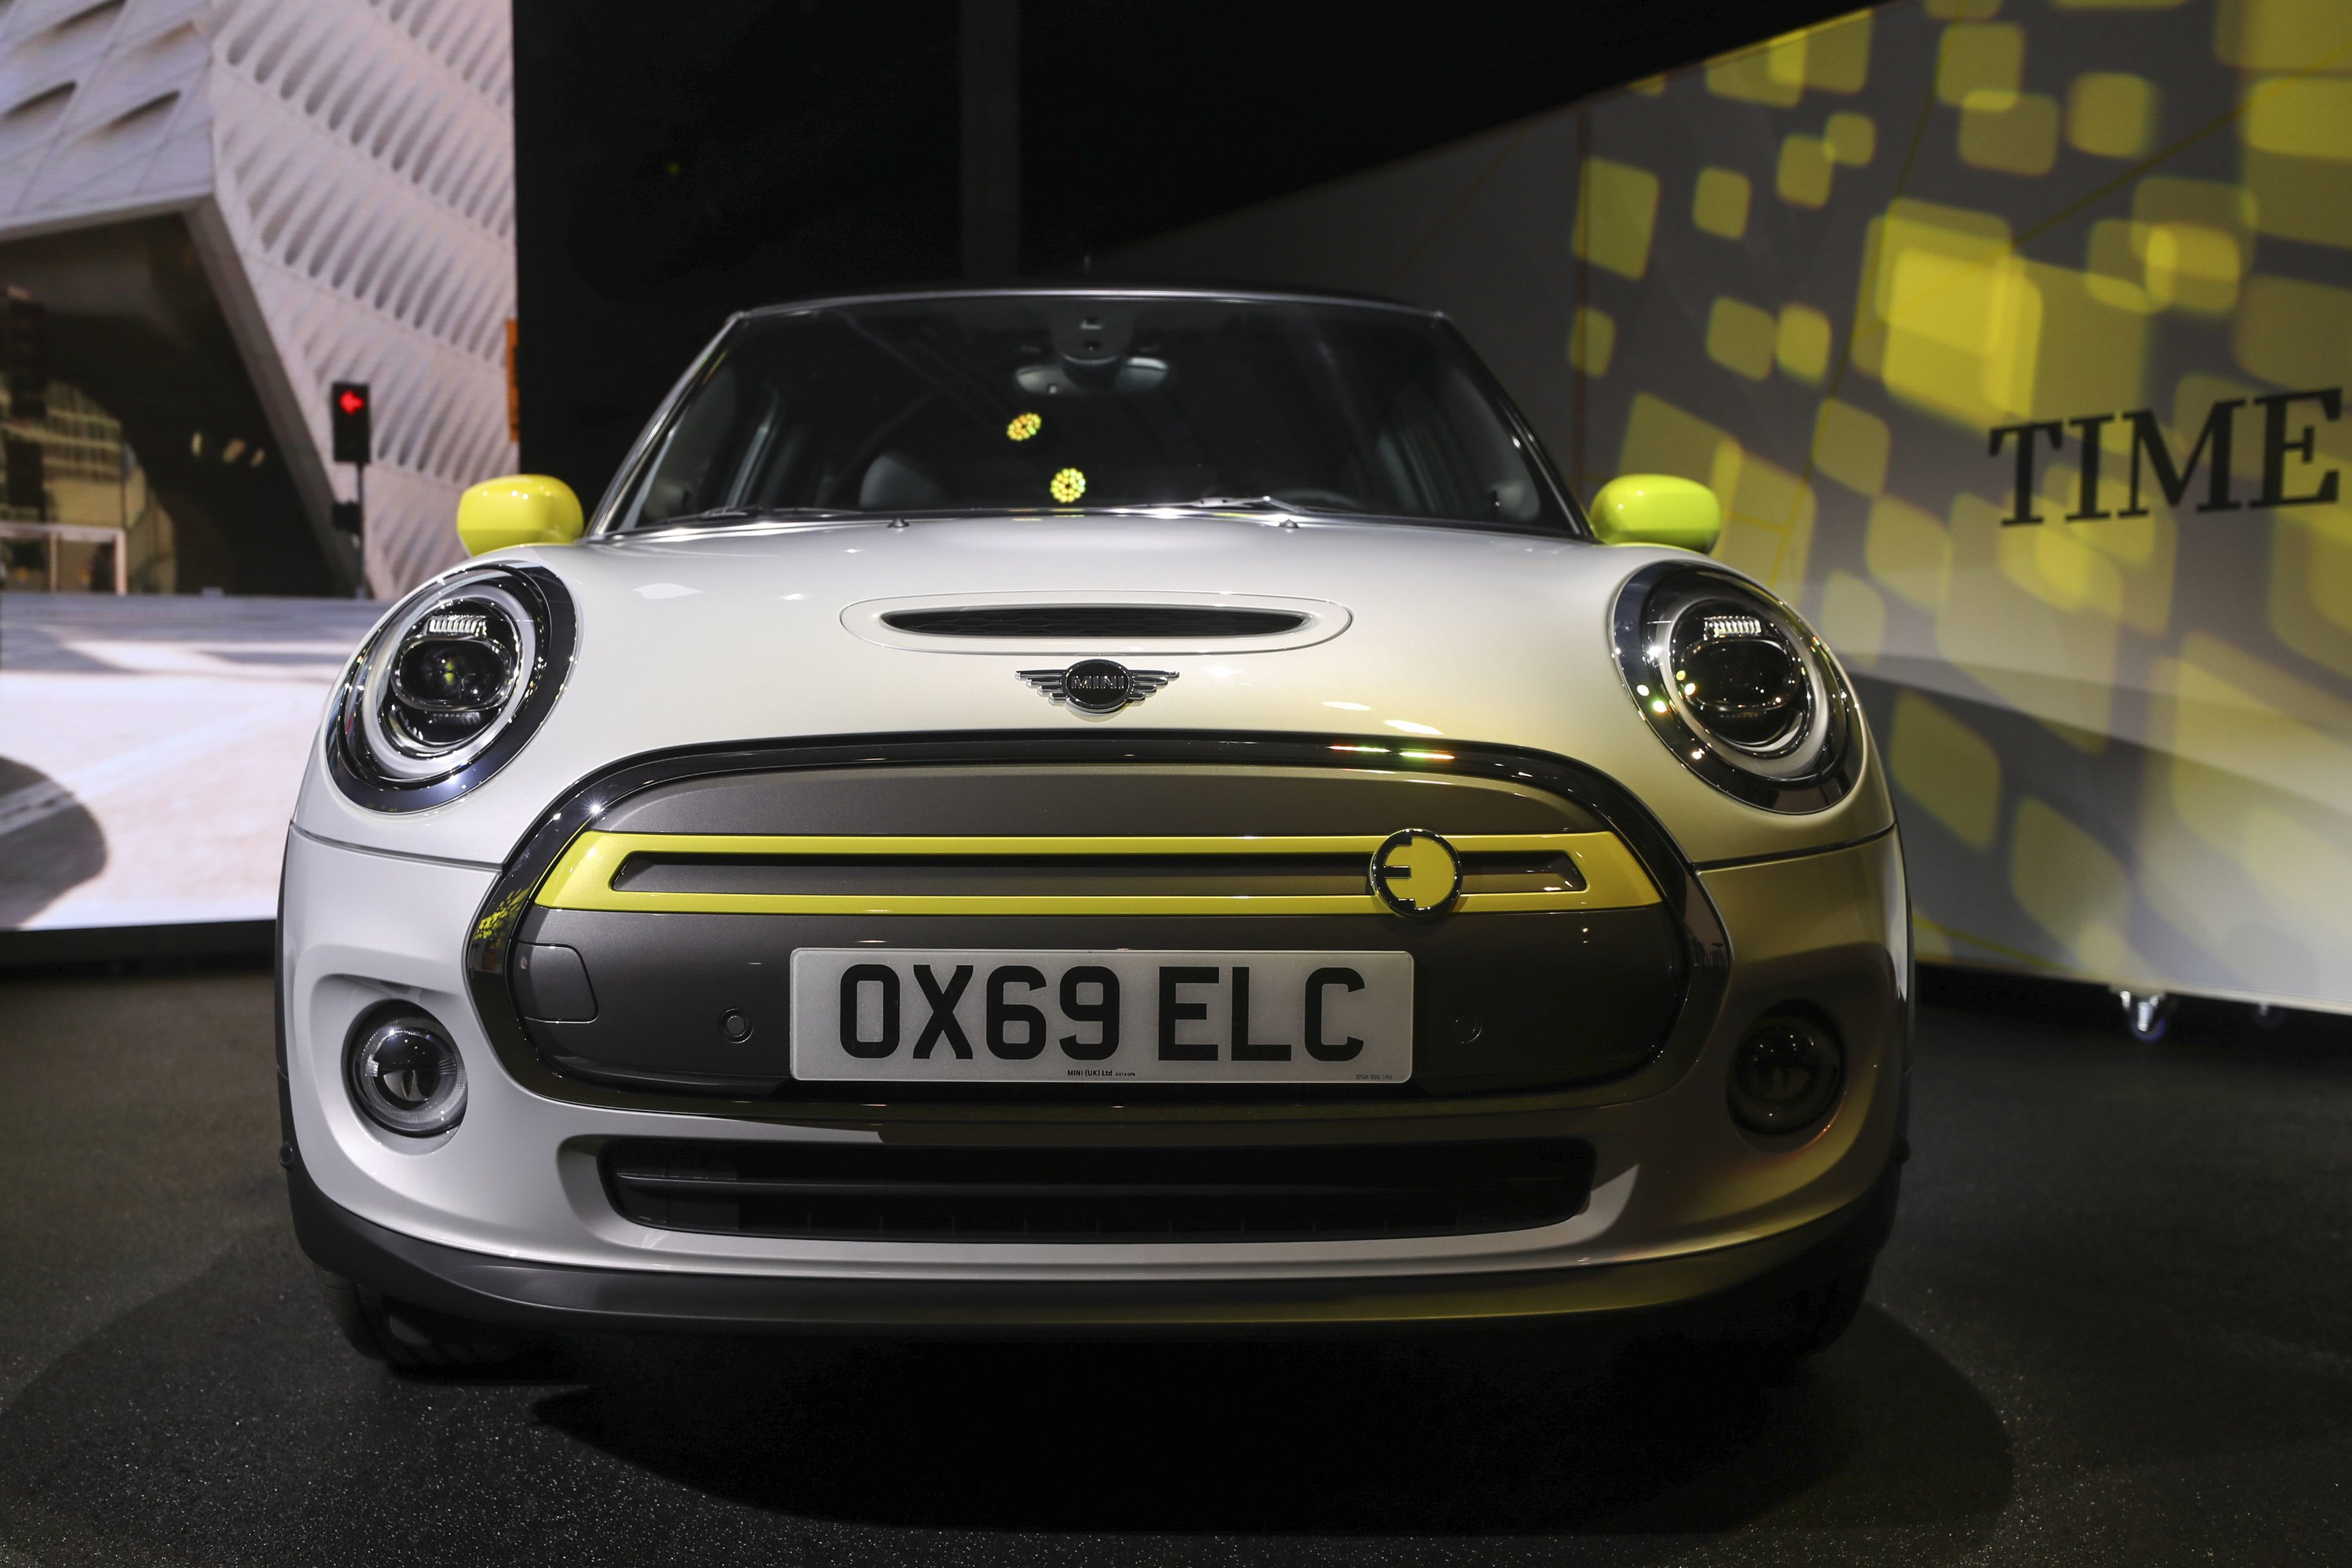 BMW takes on VW and Tesla with $36,400 electric Mini Cooper